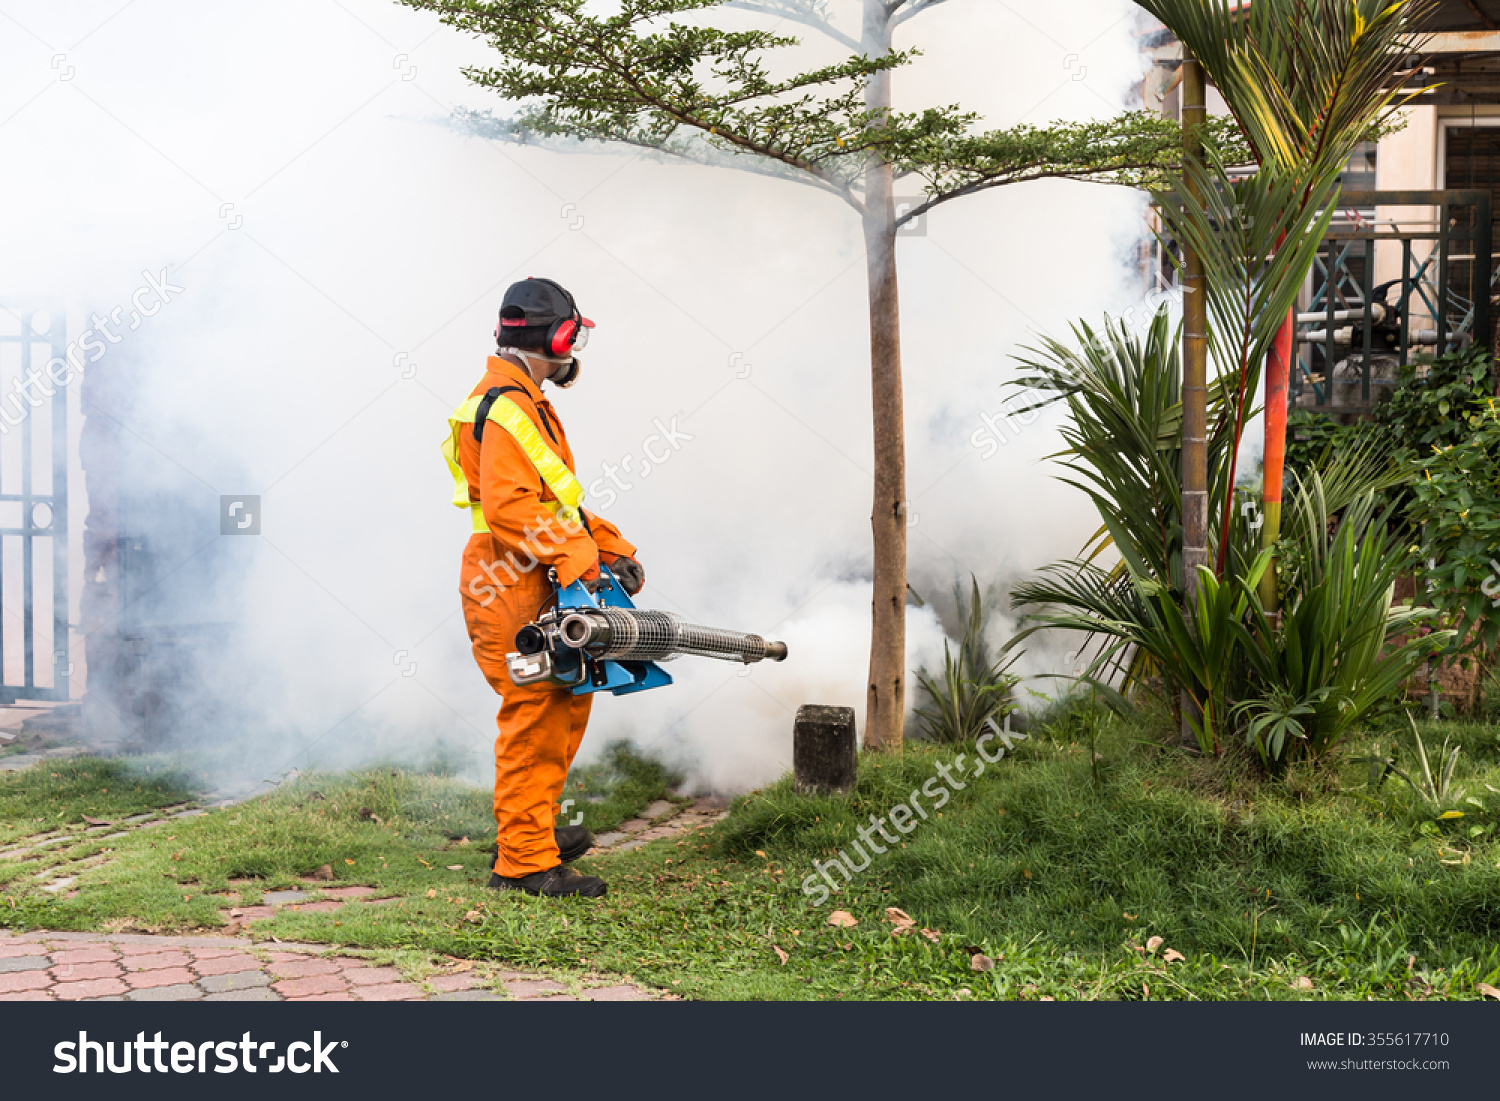 Worker Fogging Residential Area Insecticides Kill Stock Photo.